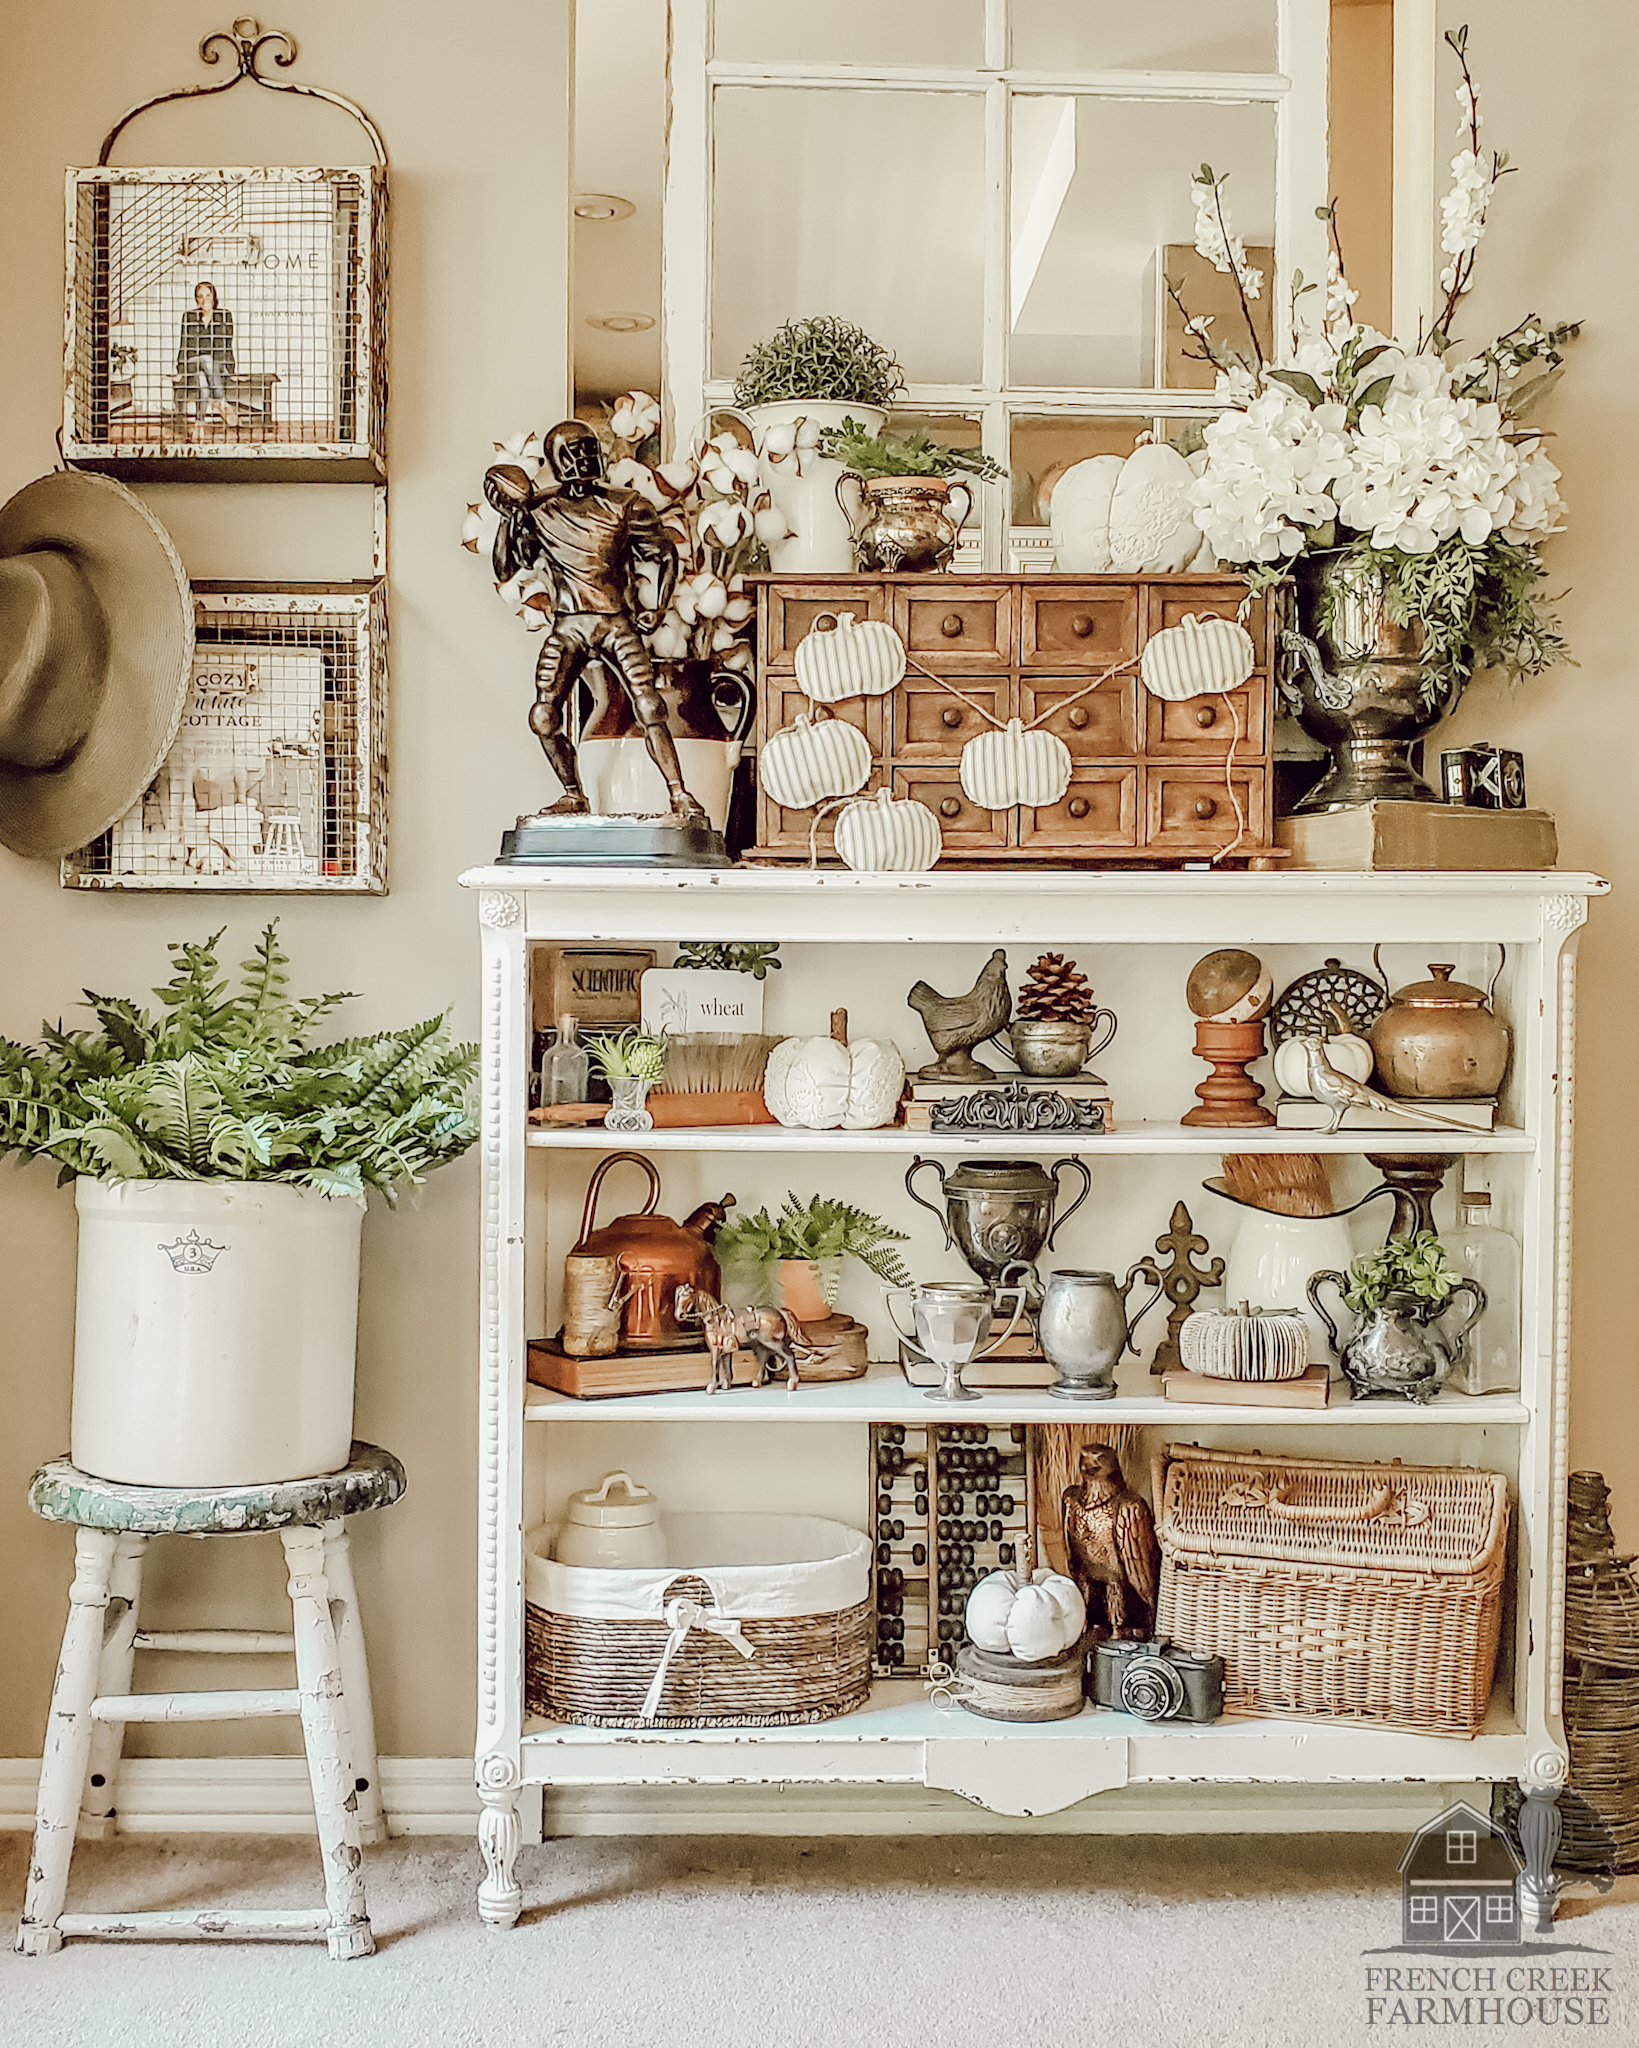 Antique bookshelves are decorated with vintage items for fall